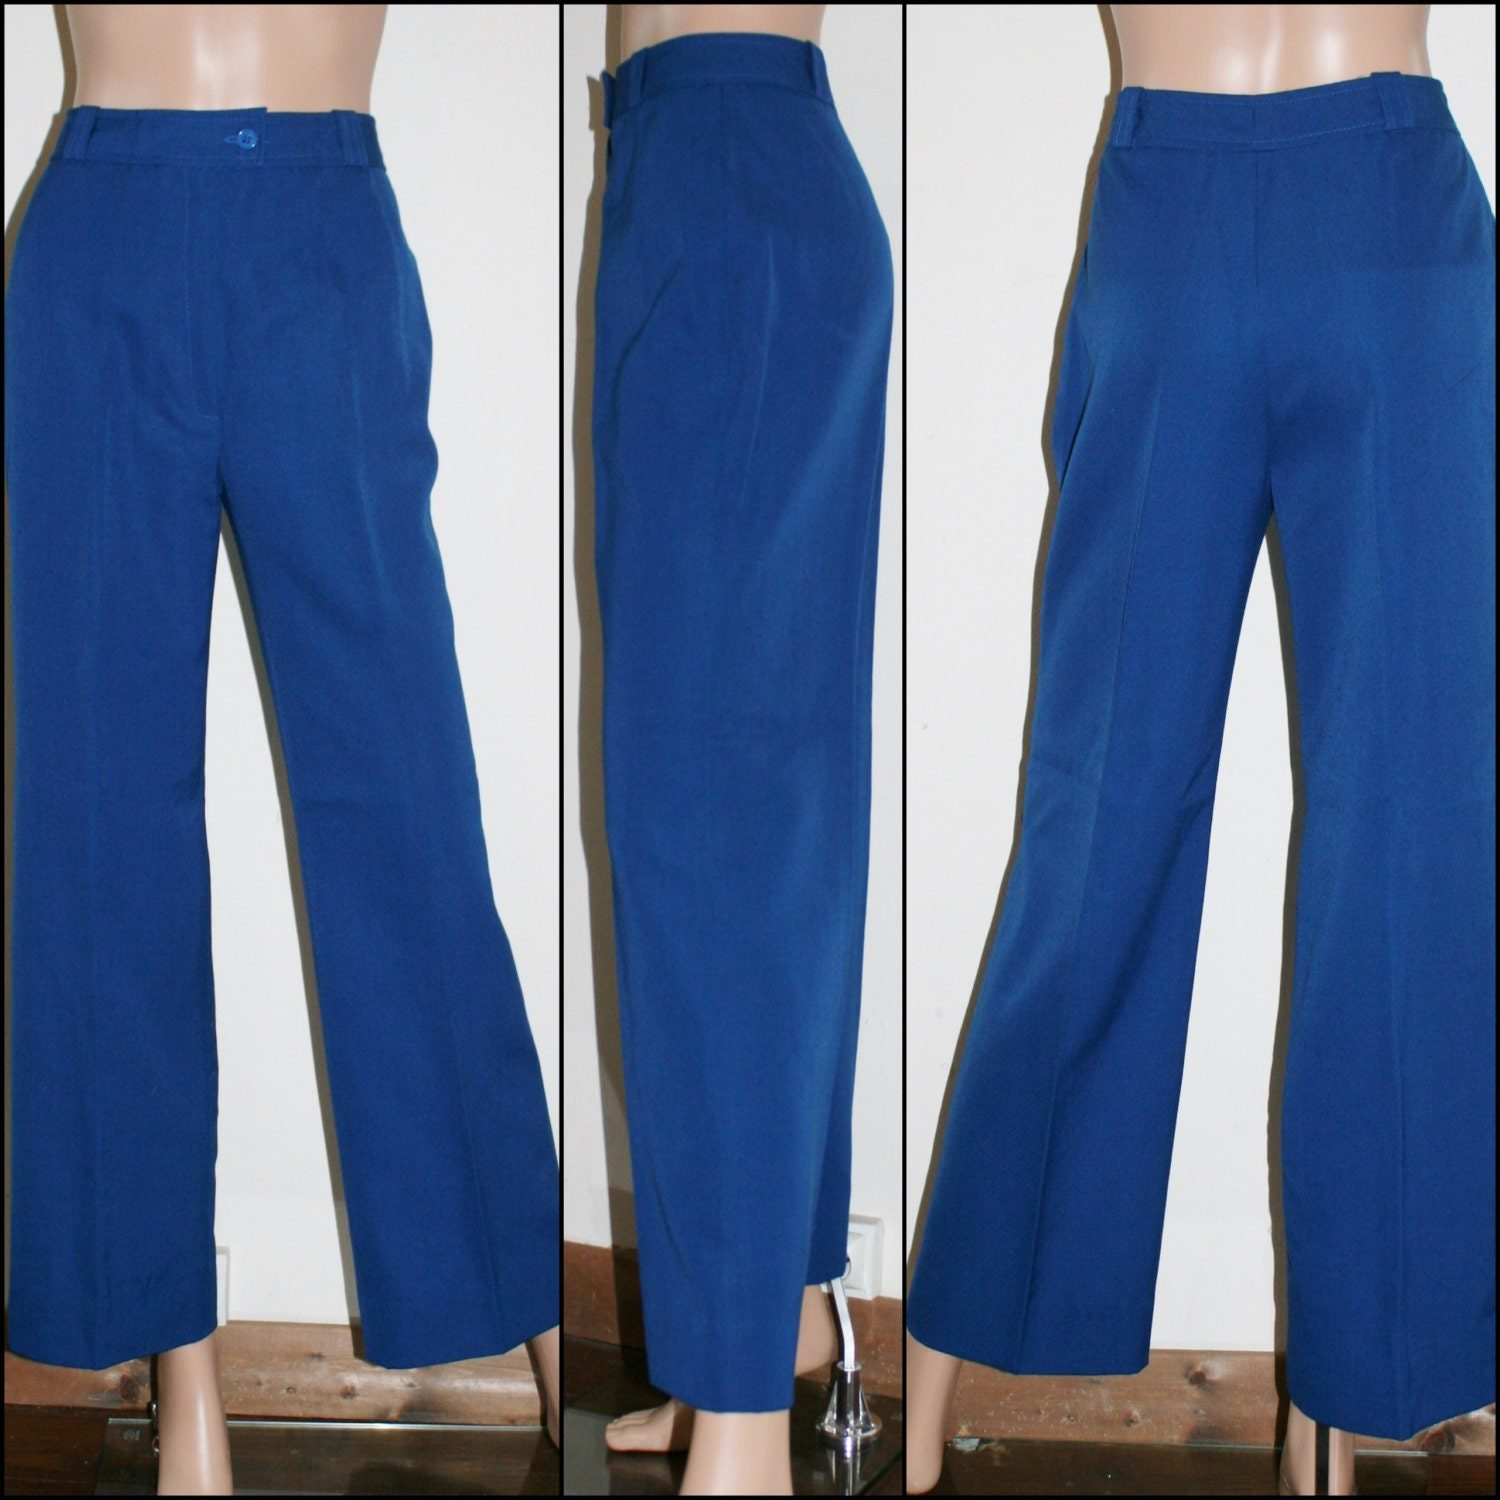 Find great deals on eBay for royal blue dress pants women. Shop with confidence.